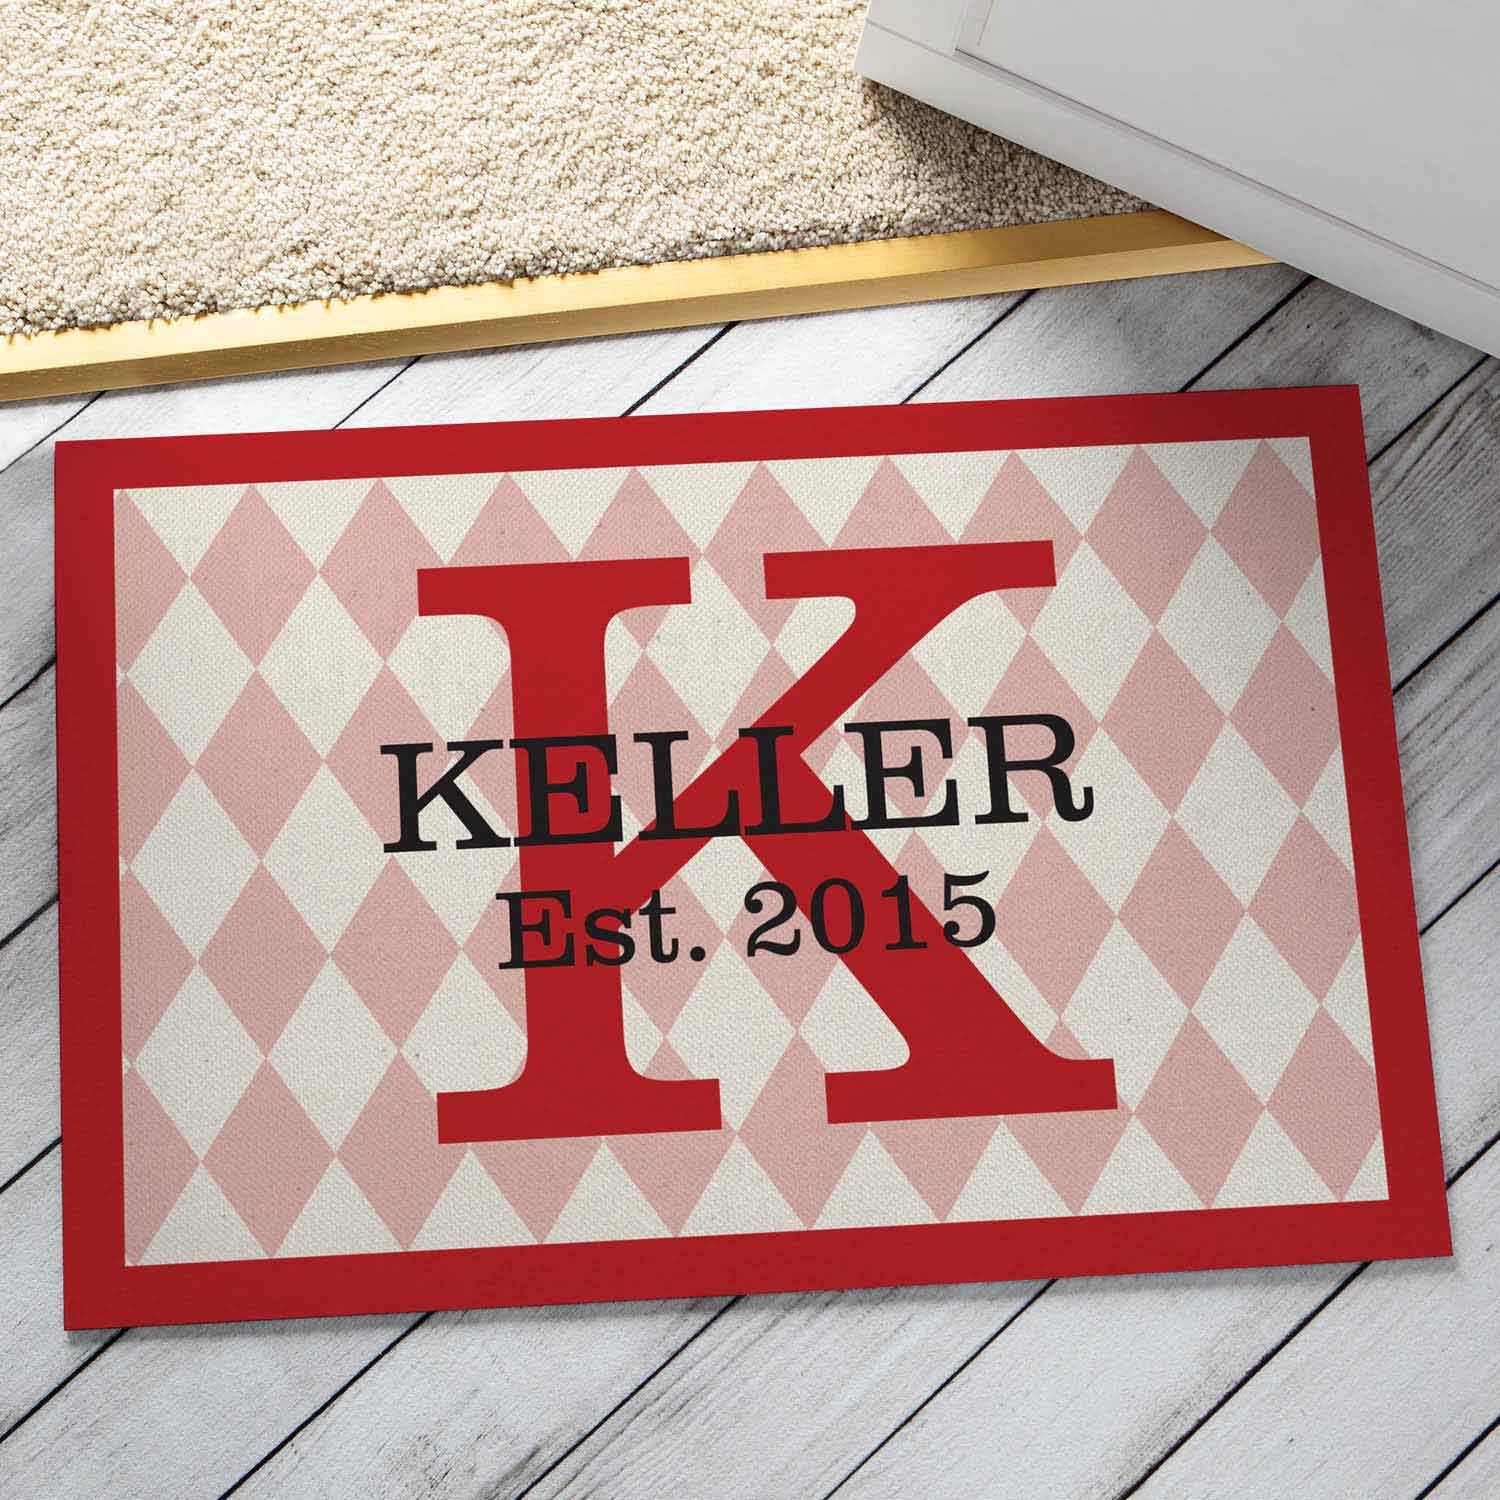 Personalized Family Pride Doormat, Red